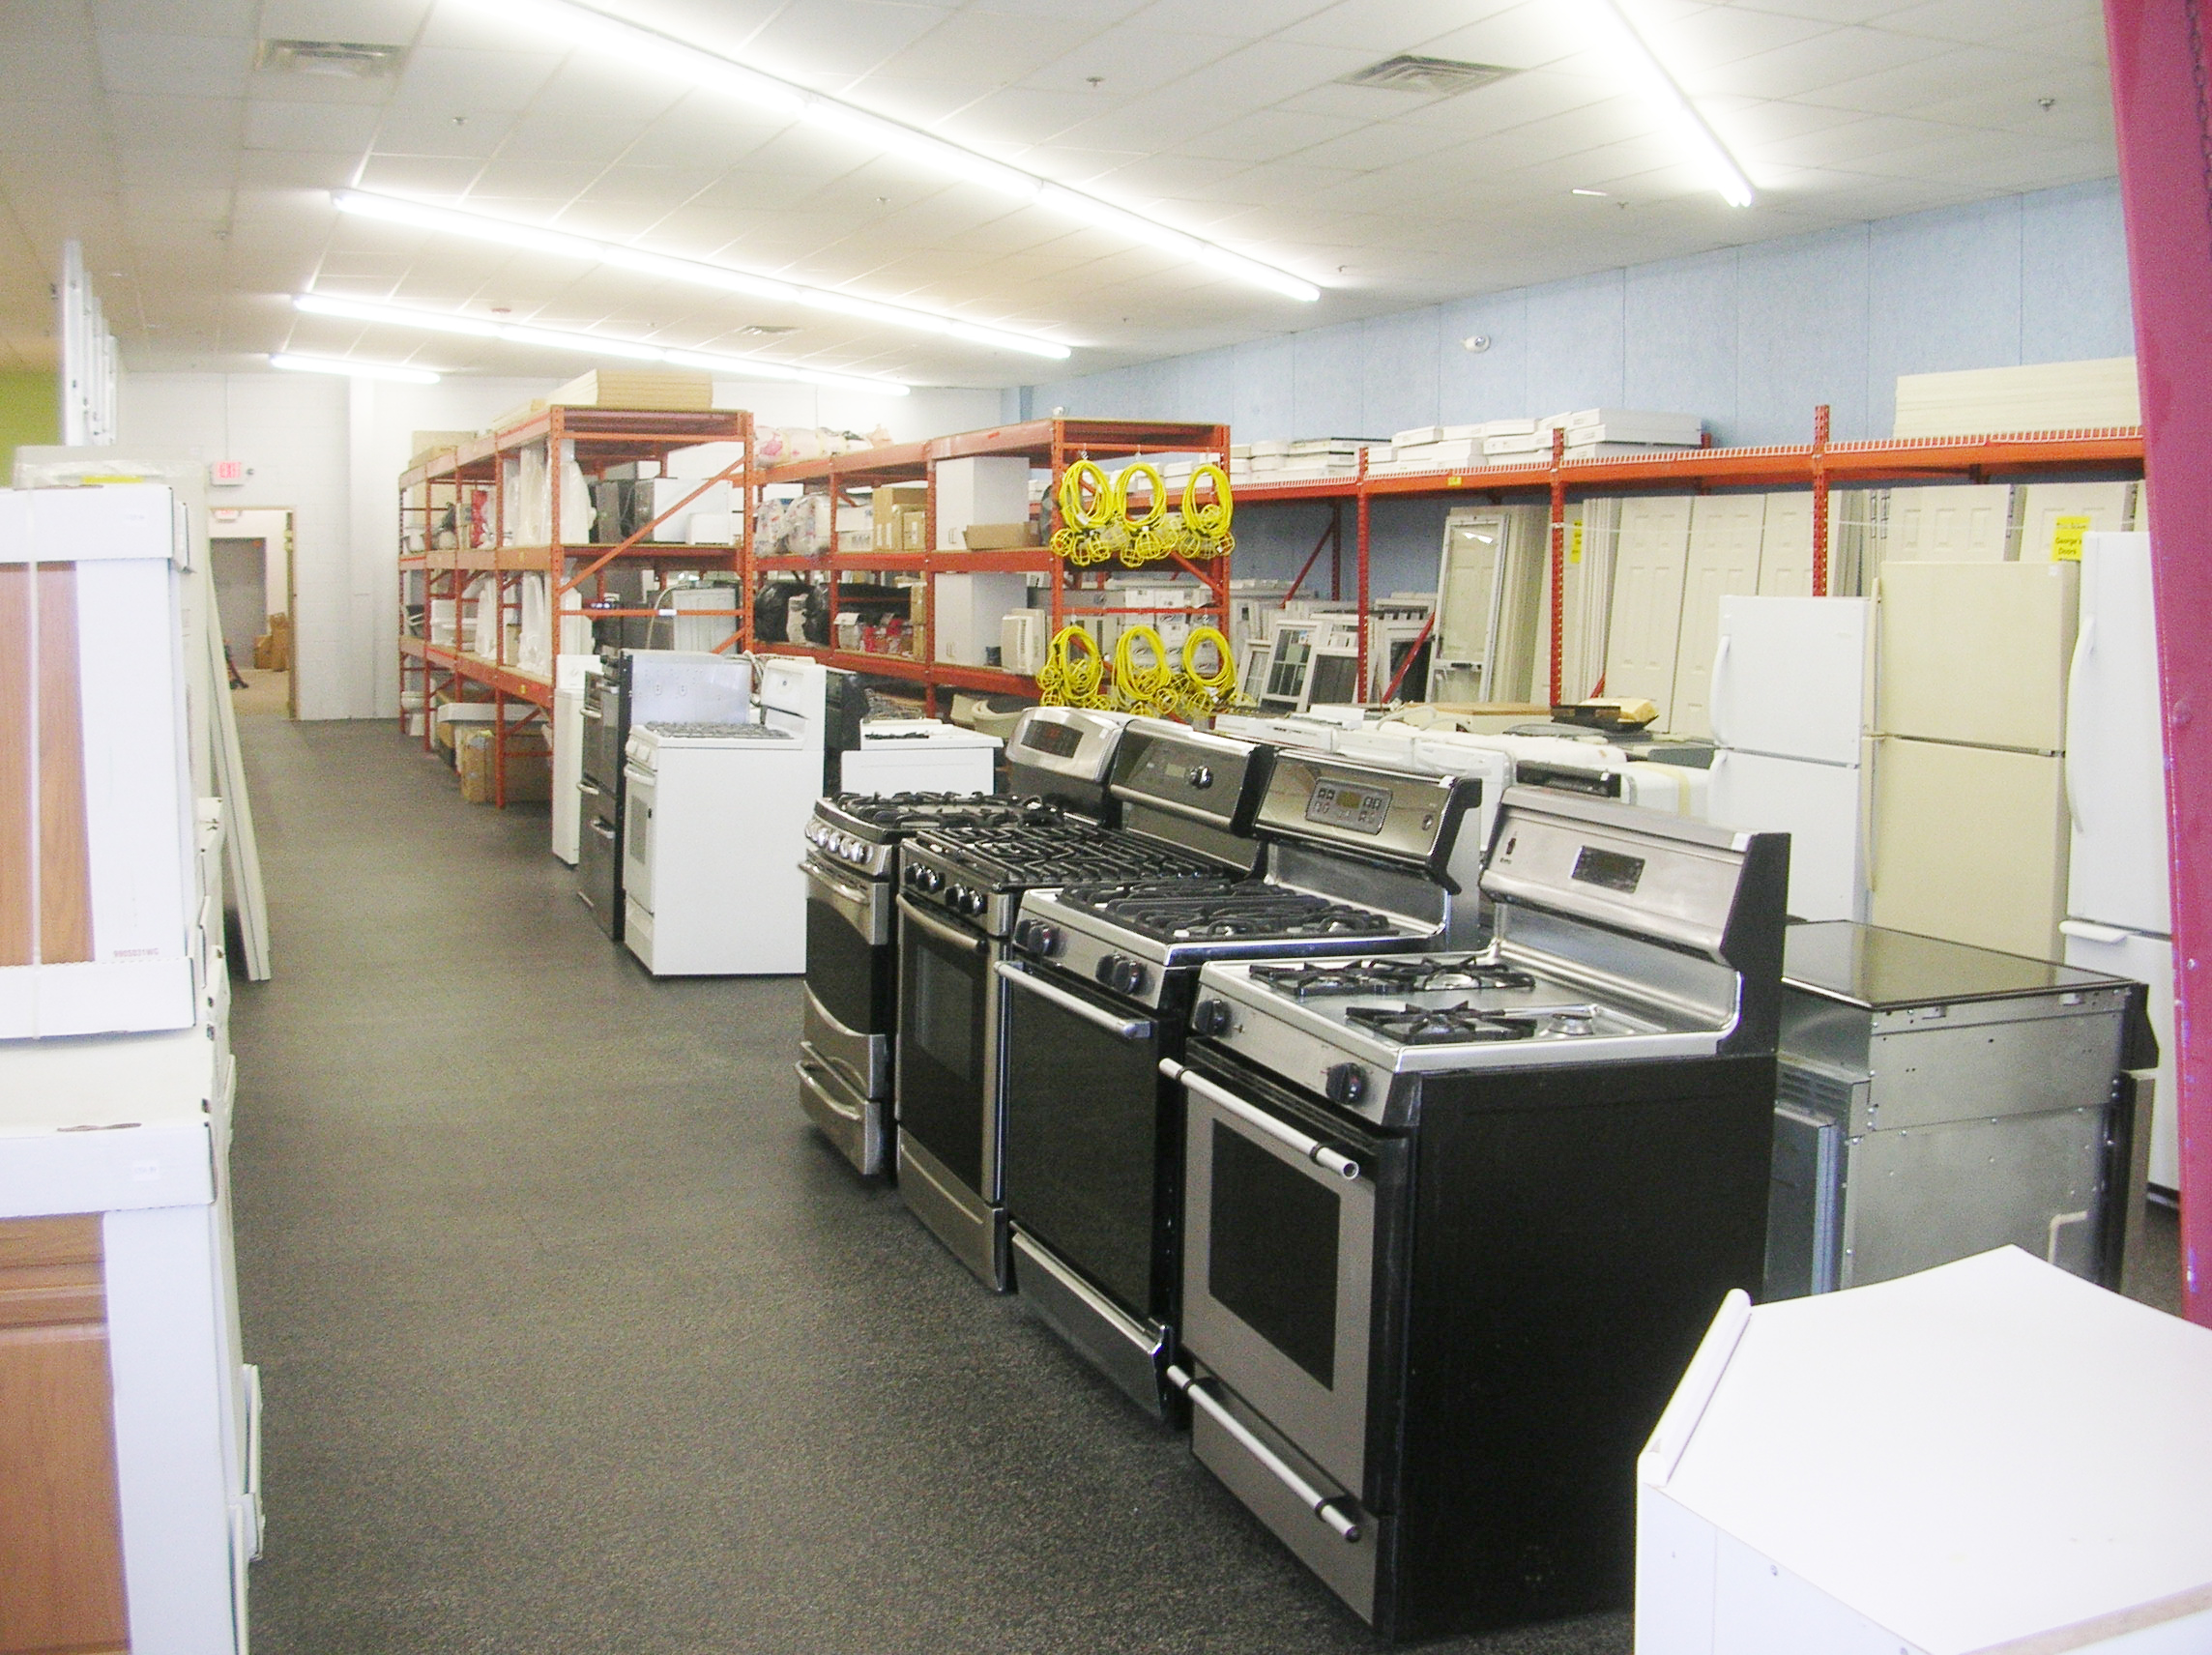 Where To Donate Used Furniture Where To Donate Used Appliances ...